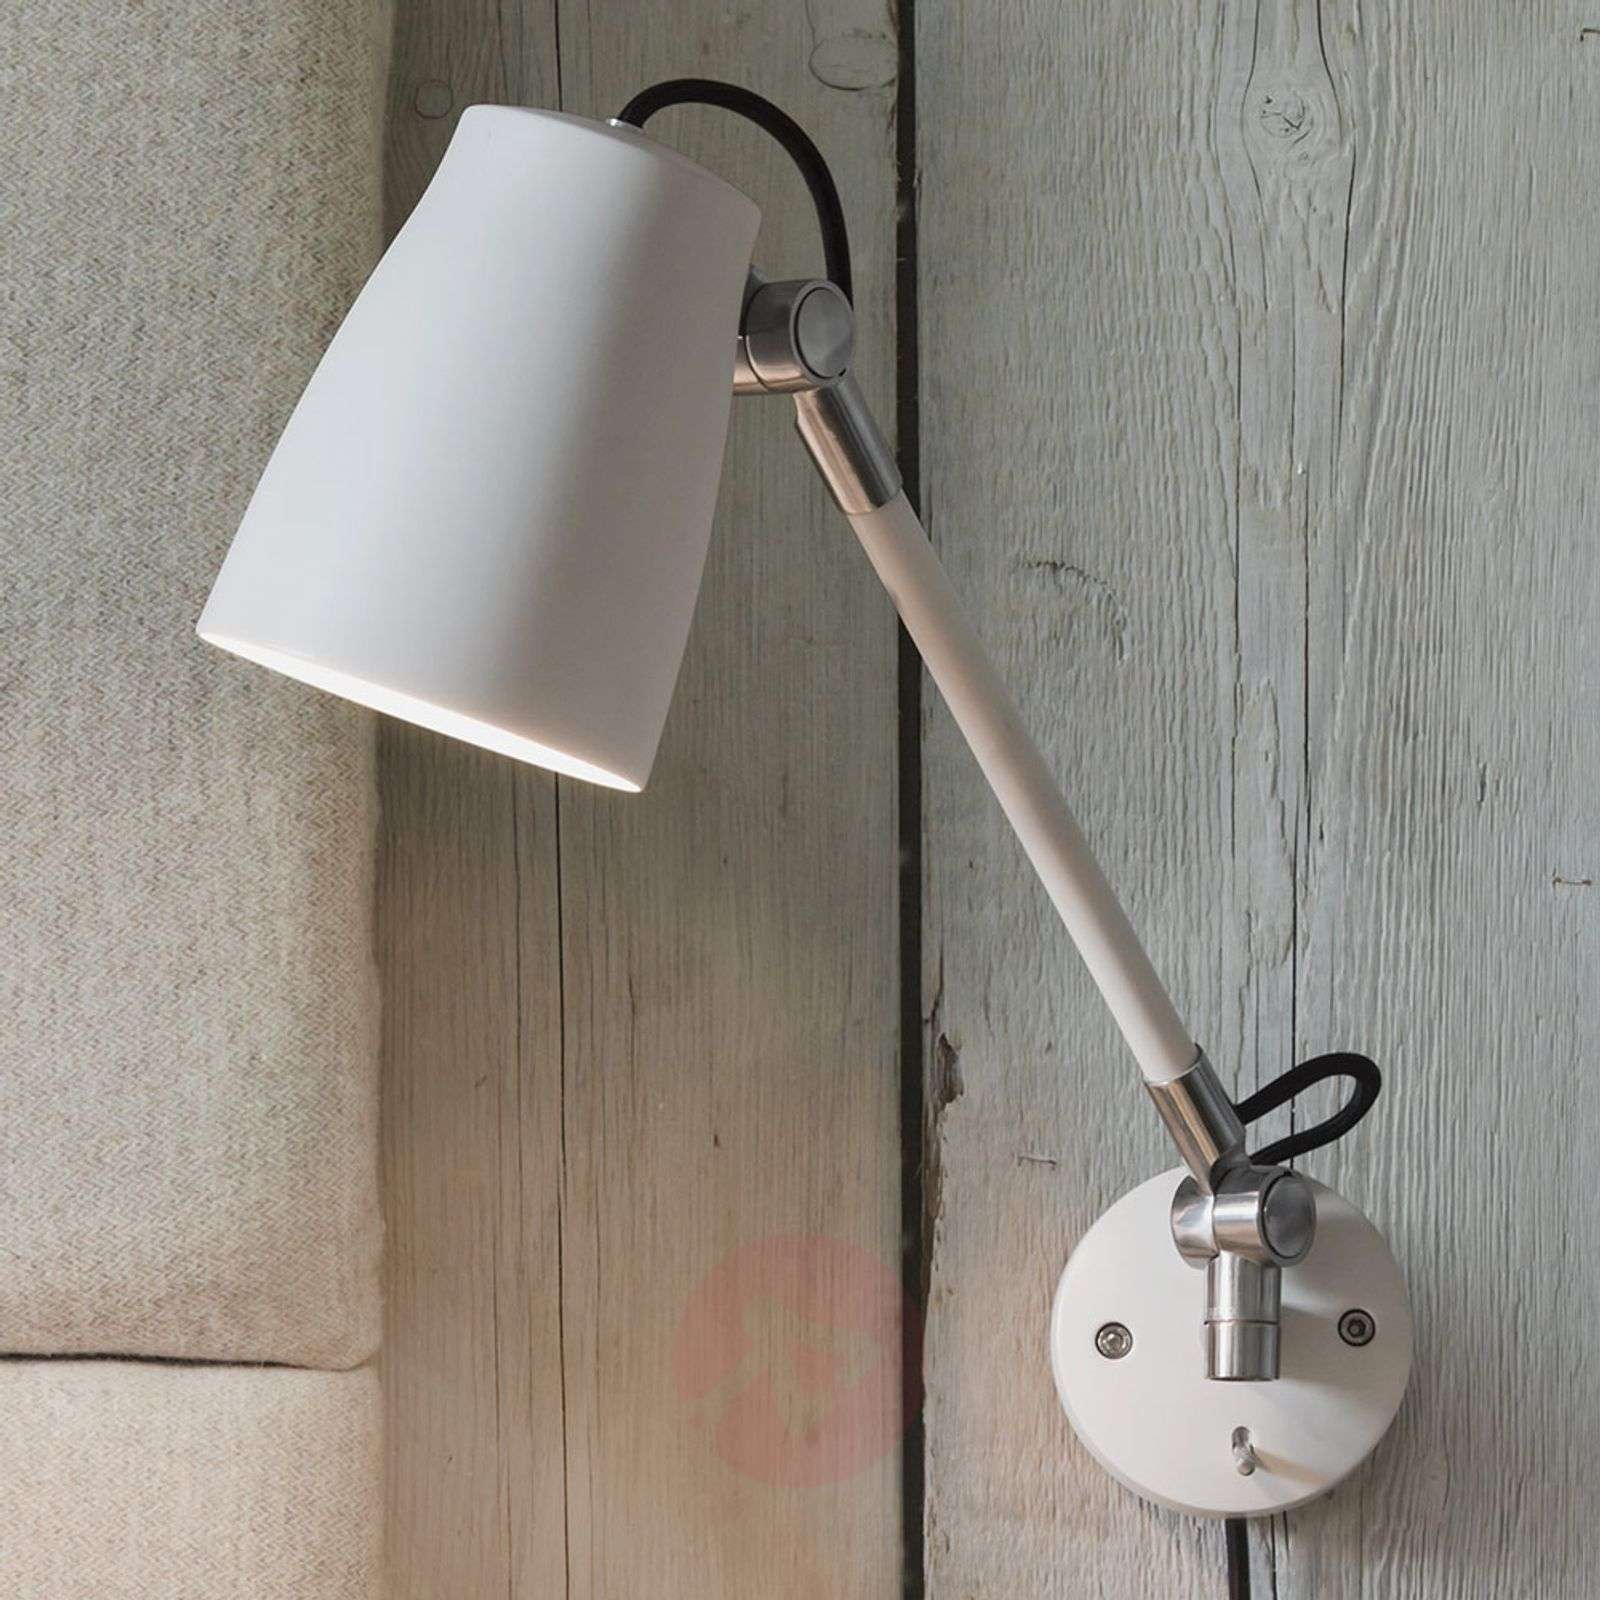 Atelier Grande flexible wall light with a plug-1020524-02